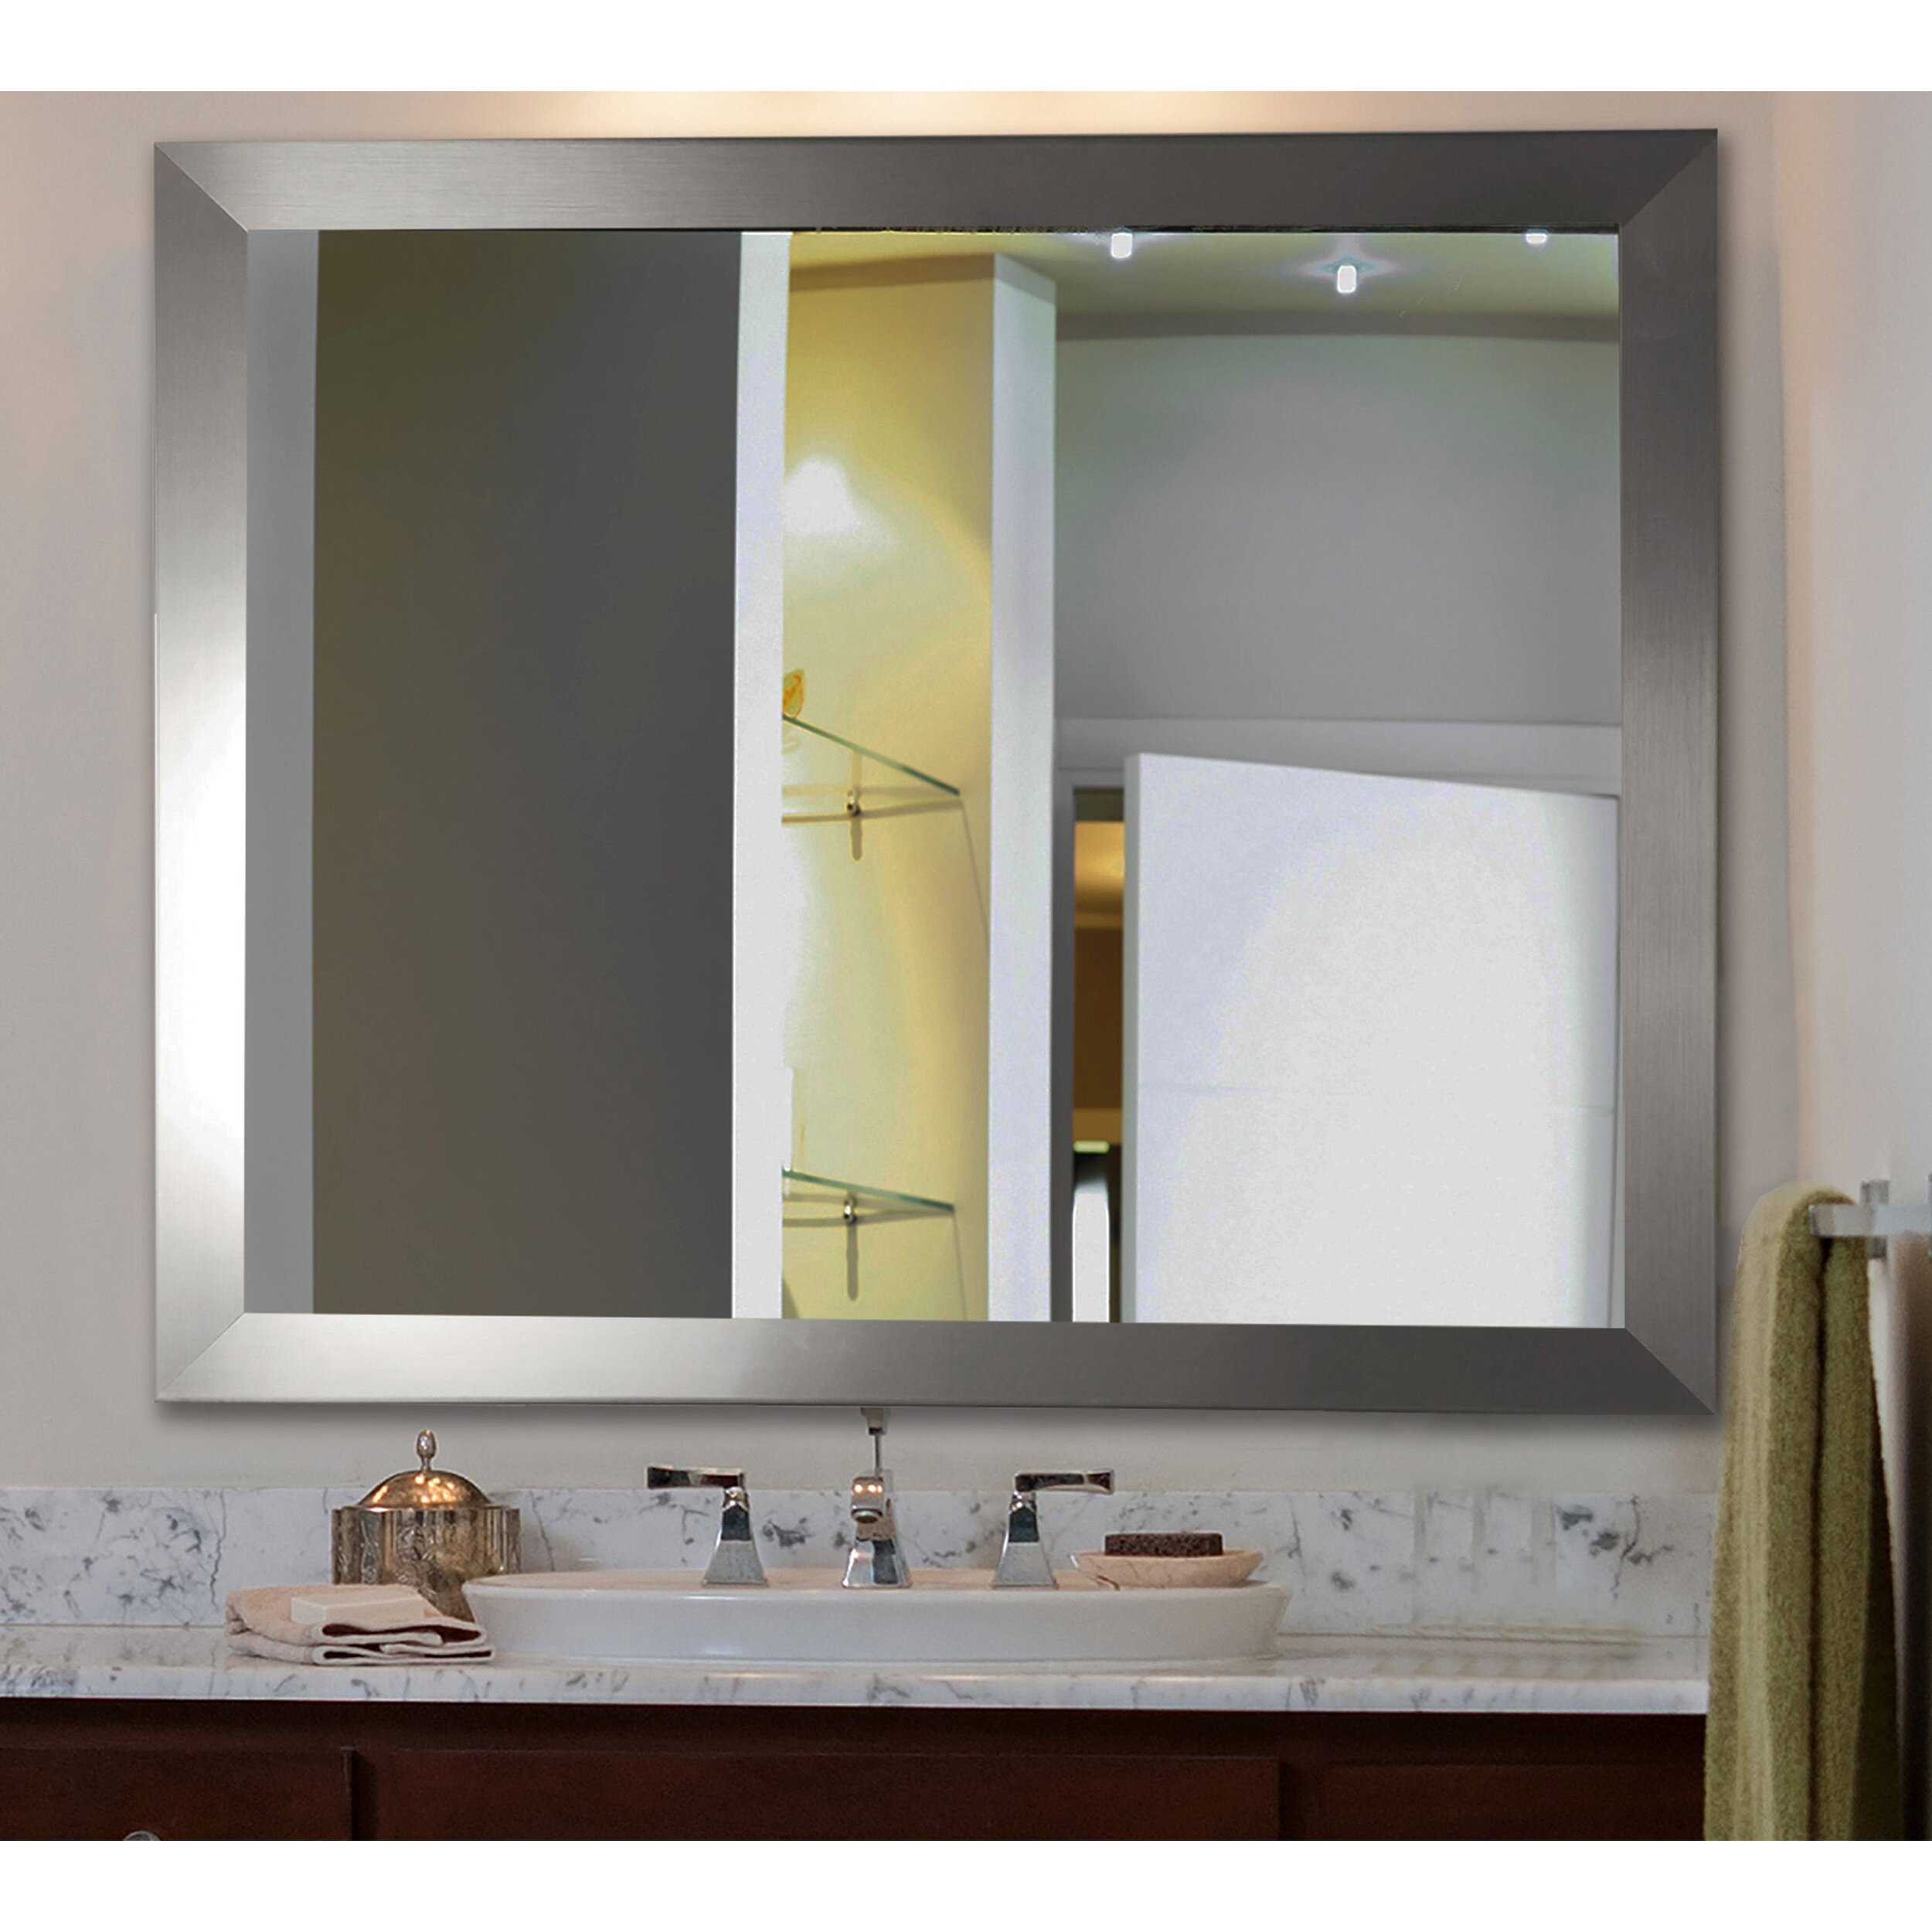 Wayfair Wall Mirrors wayfair bathroom mirrors ~ dact